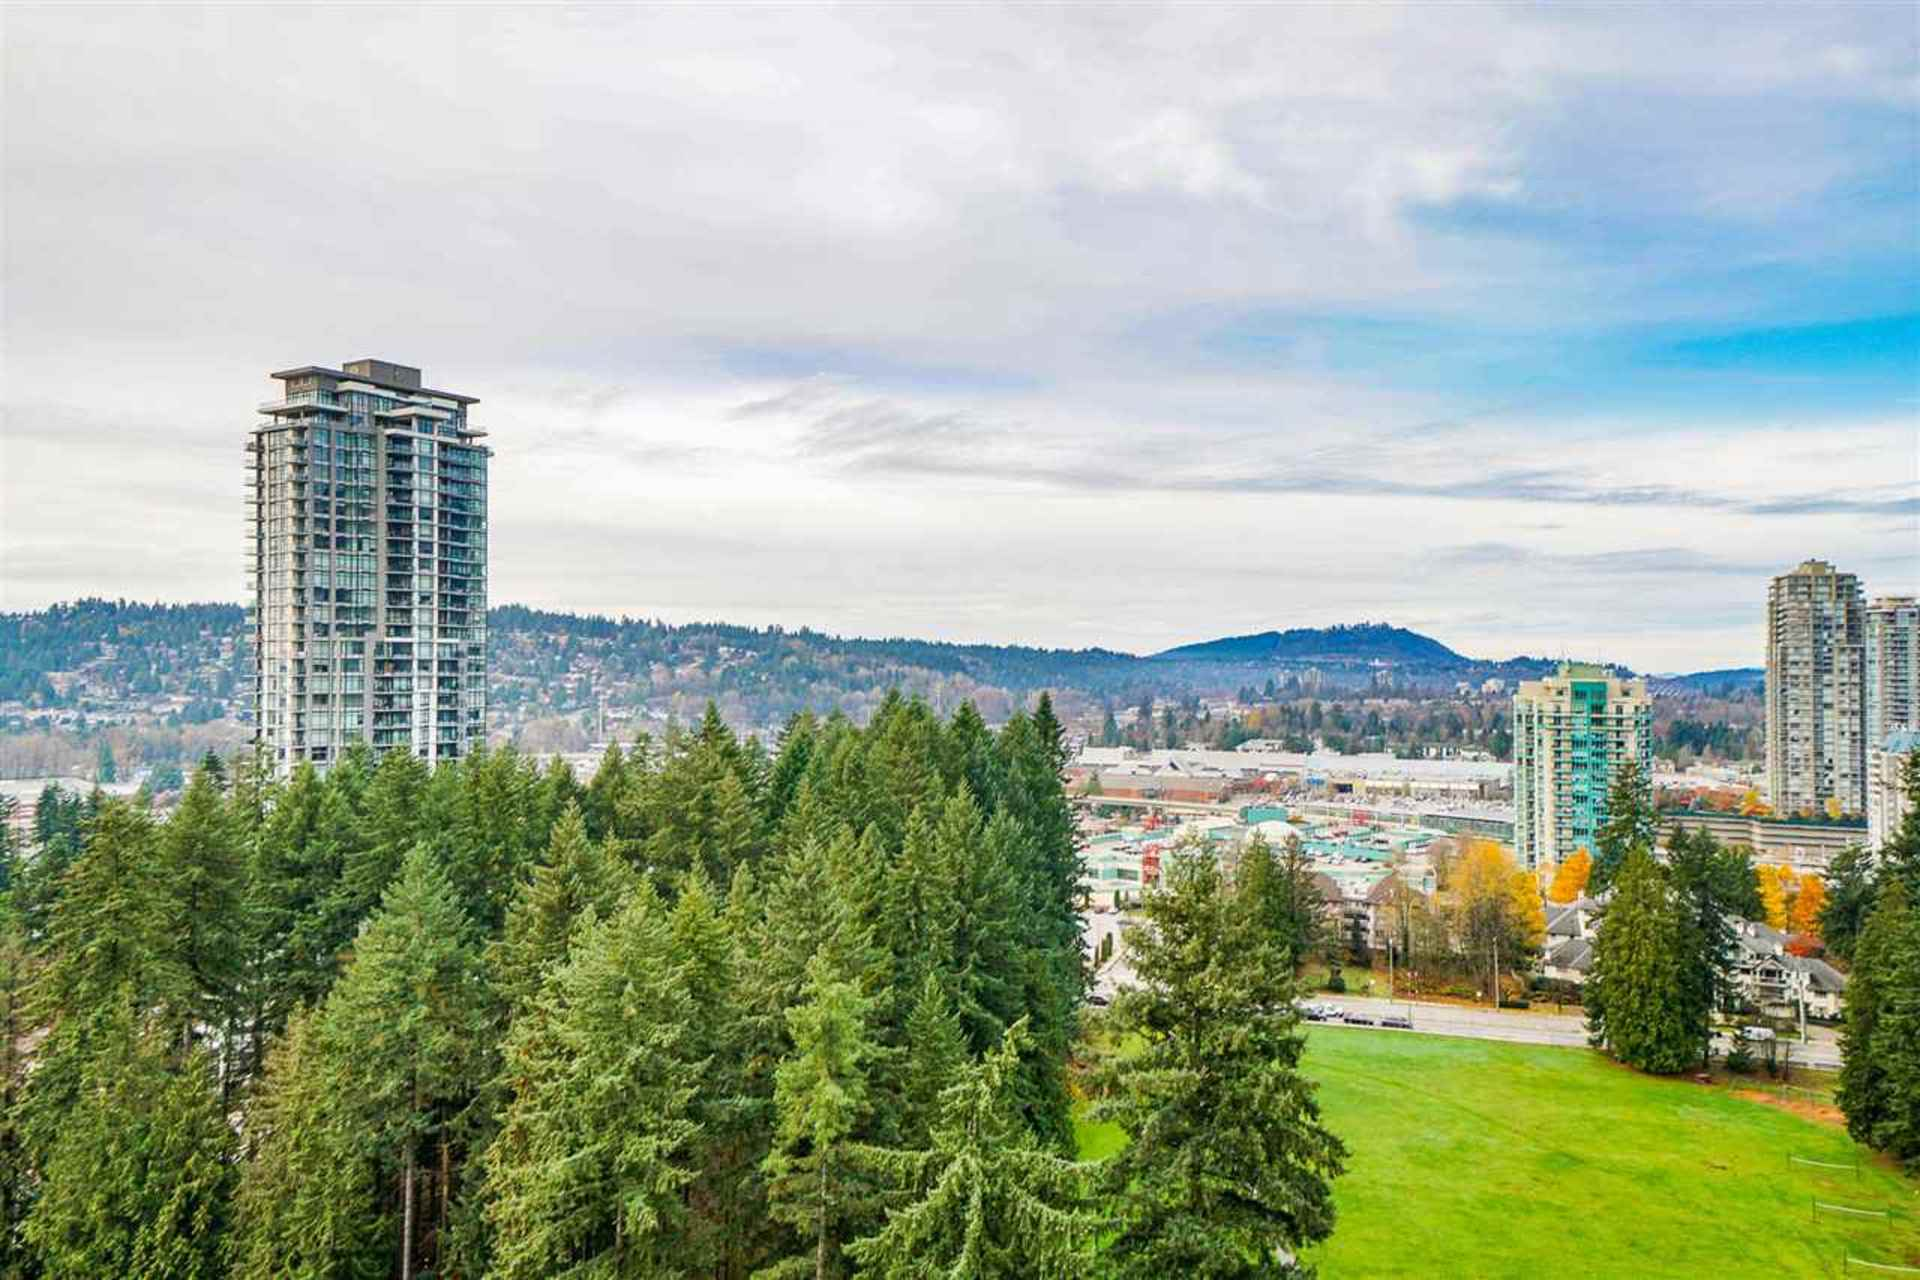 3093-windsor-gate-new-horizons-coquitlam-10 at 2305 - 3093 Windsor Gate, New Horizons, Coquitlam